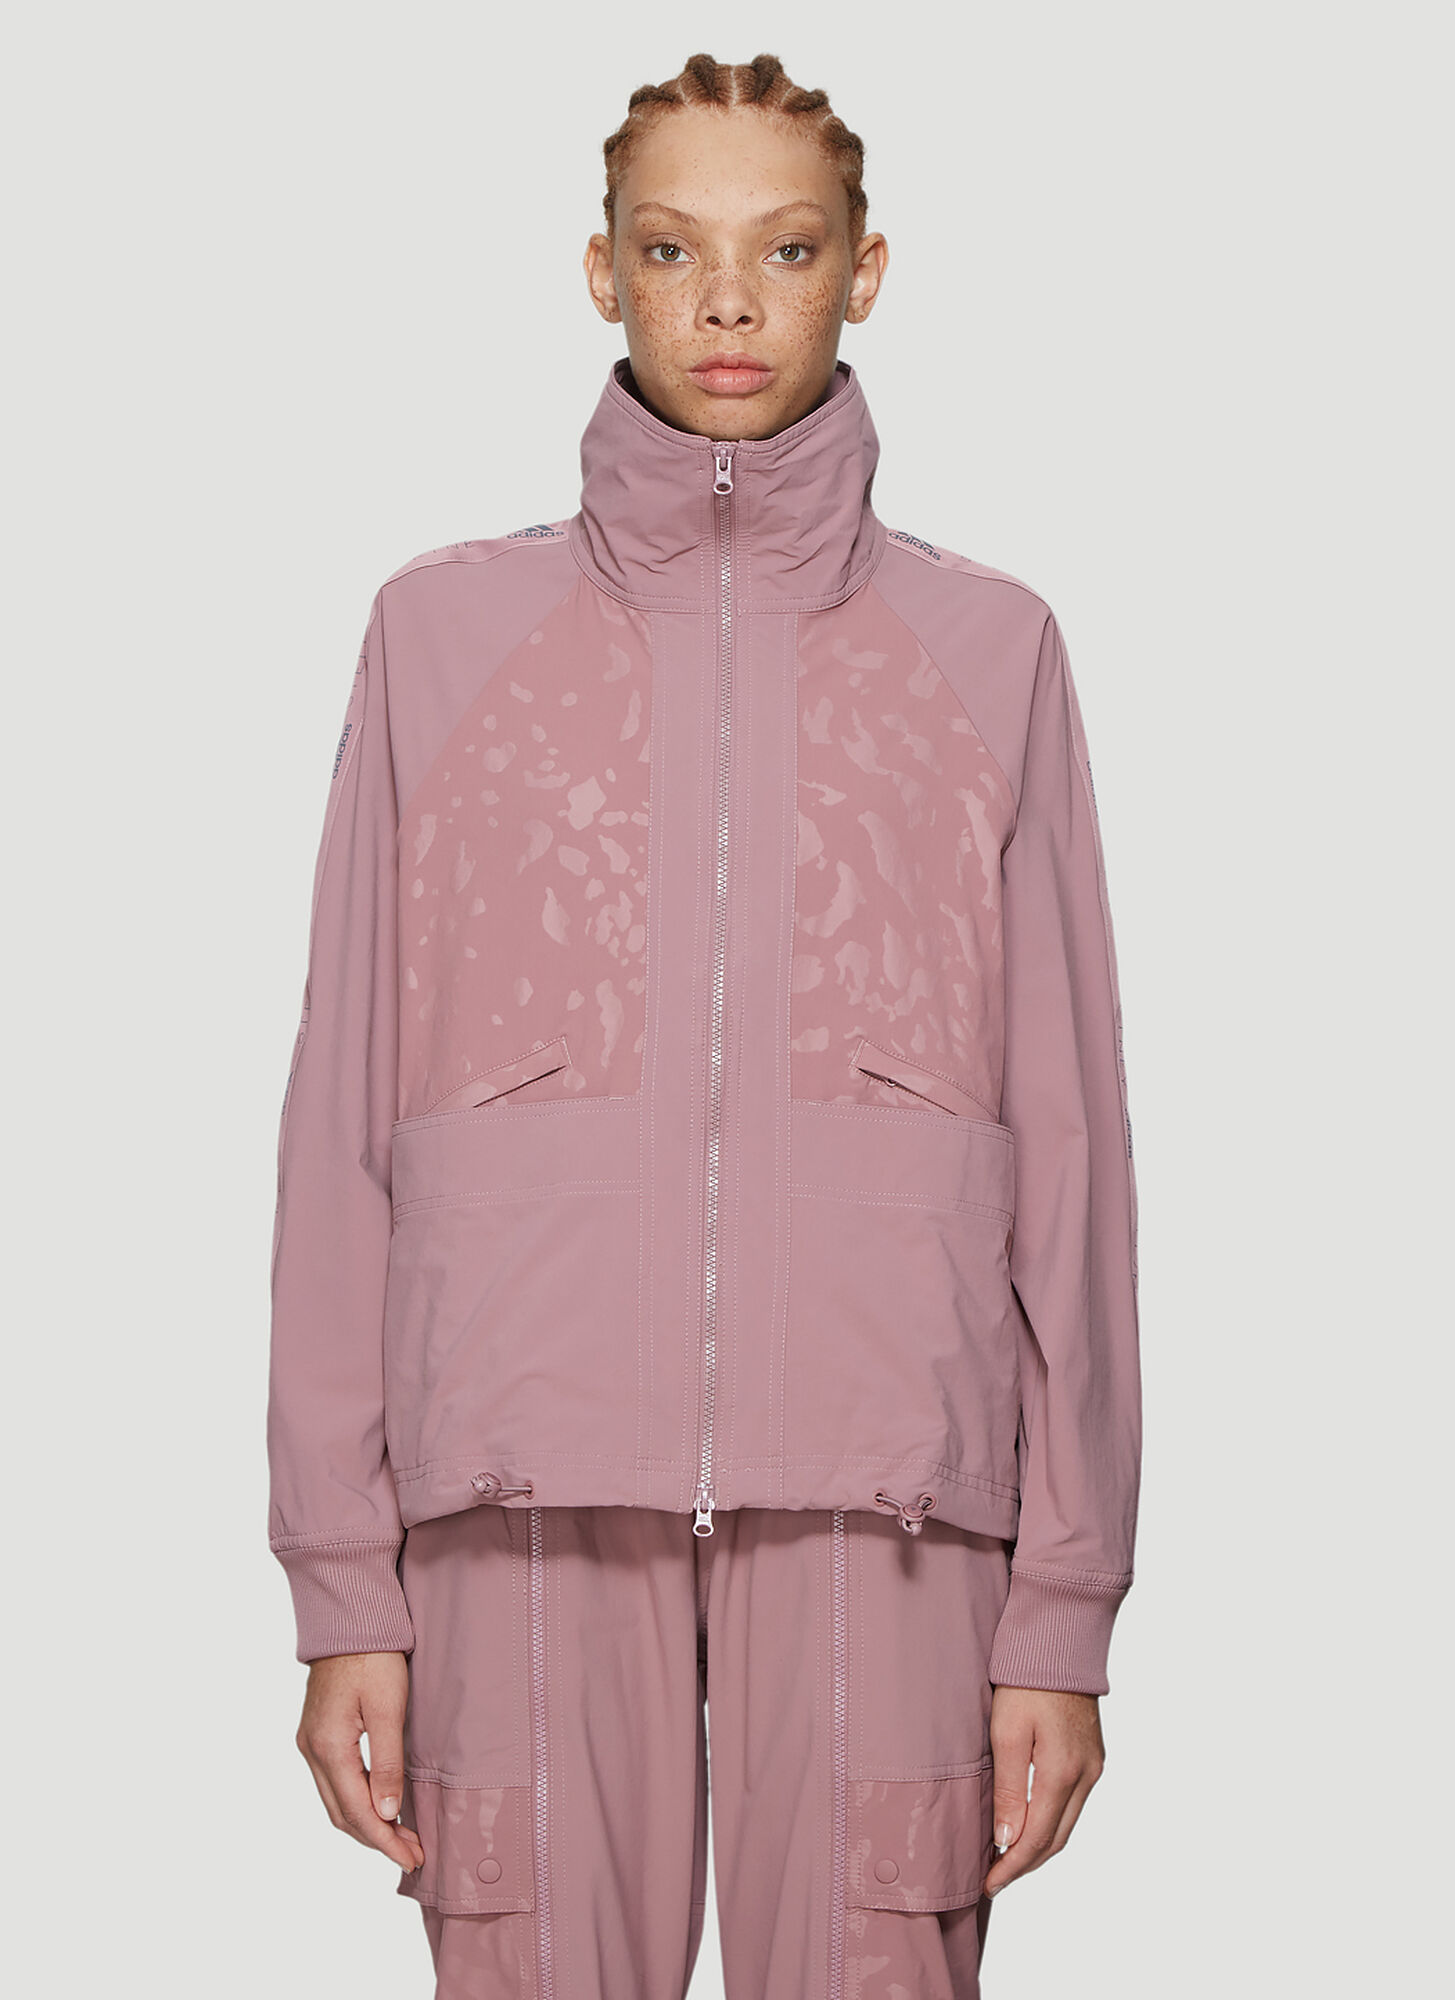 adidas by Stella McCartney Performance Track Top in Pink